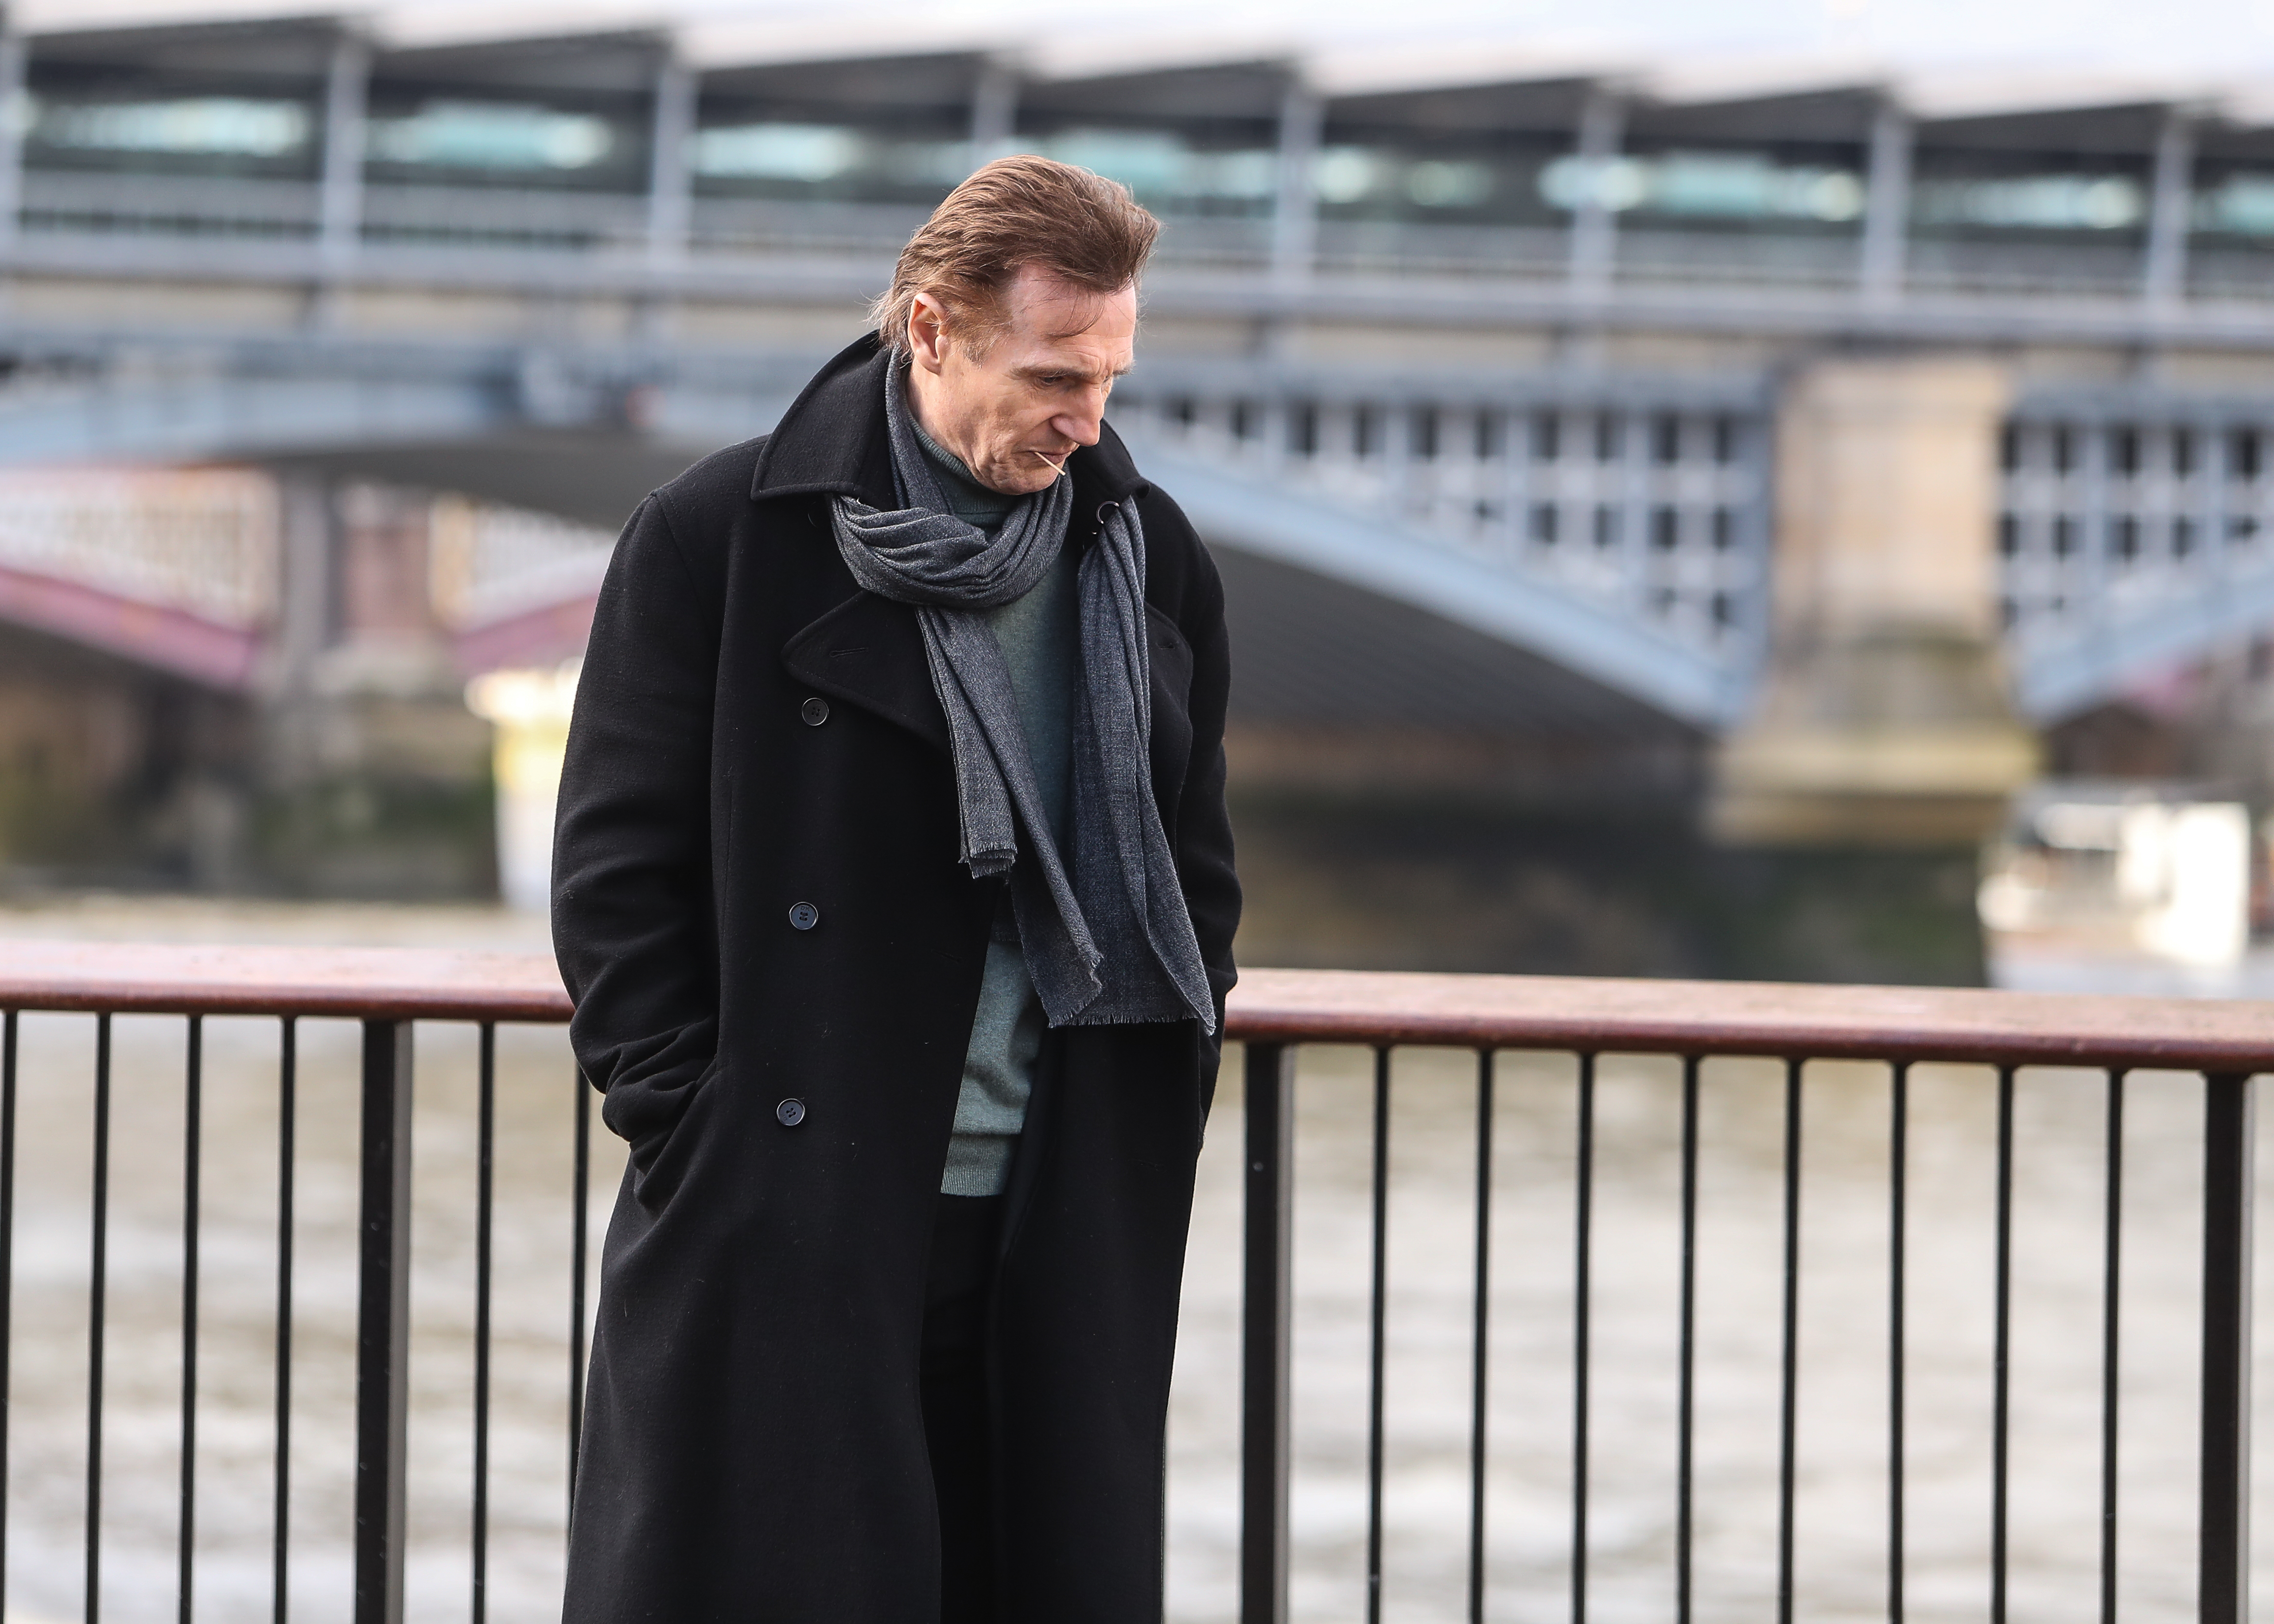 Liam Neeson, Olivia Olsen and Thomas Brodie-Sangster film a scene for a short of 'Love Actually', directed by Richard Curtis, on the South Bank in London                                    Featuring: Liam Neeson                  Where: London, United Kingdom                  When: 16 Feb 2017                  Credit: WENN.com